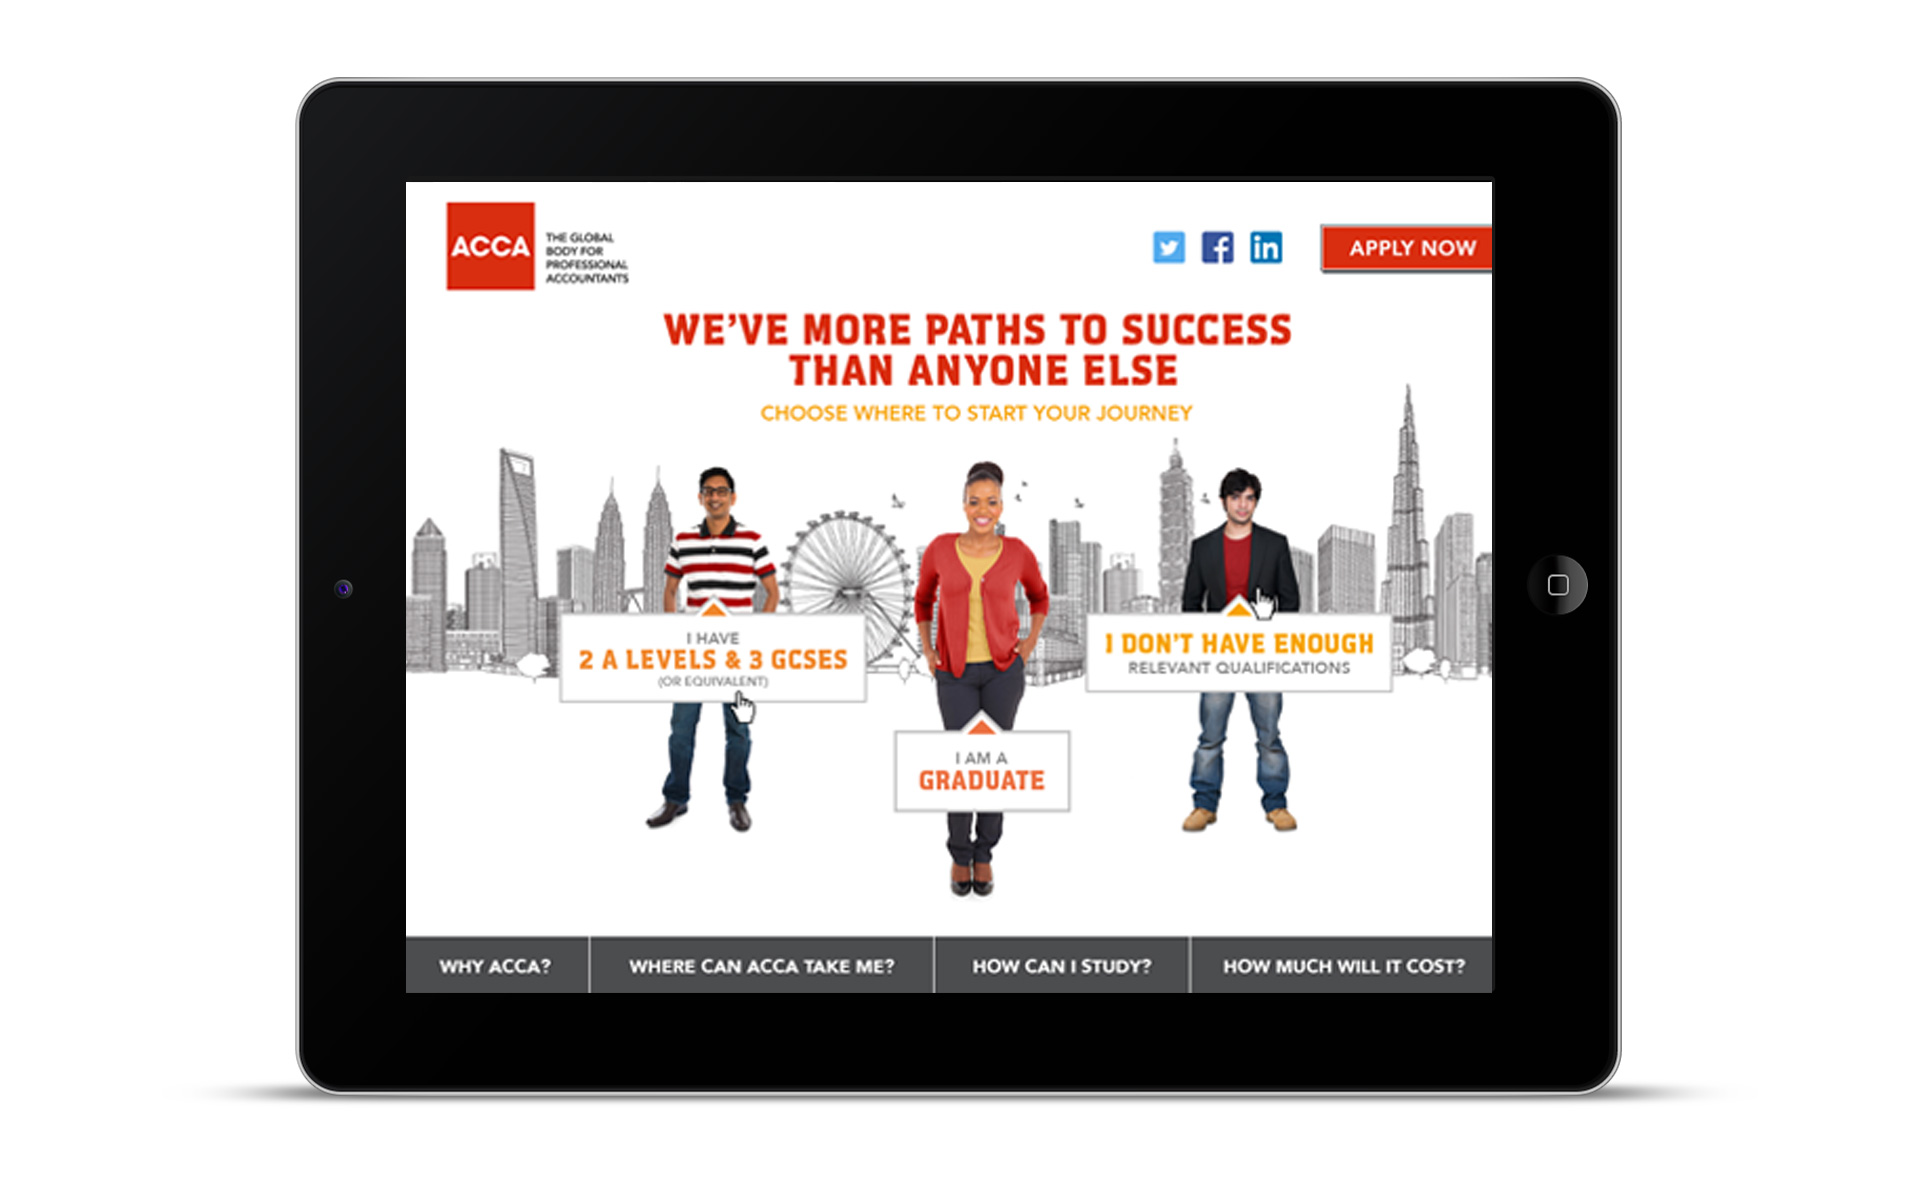 ACCA Microsite Home More Paths